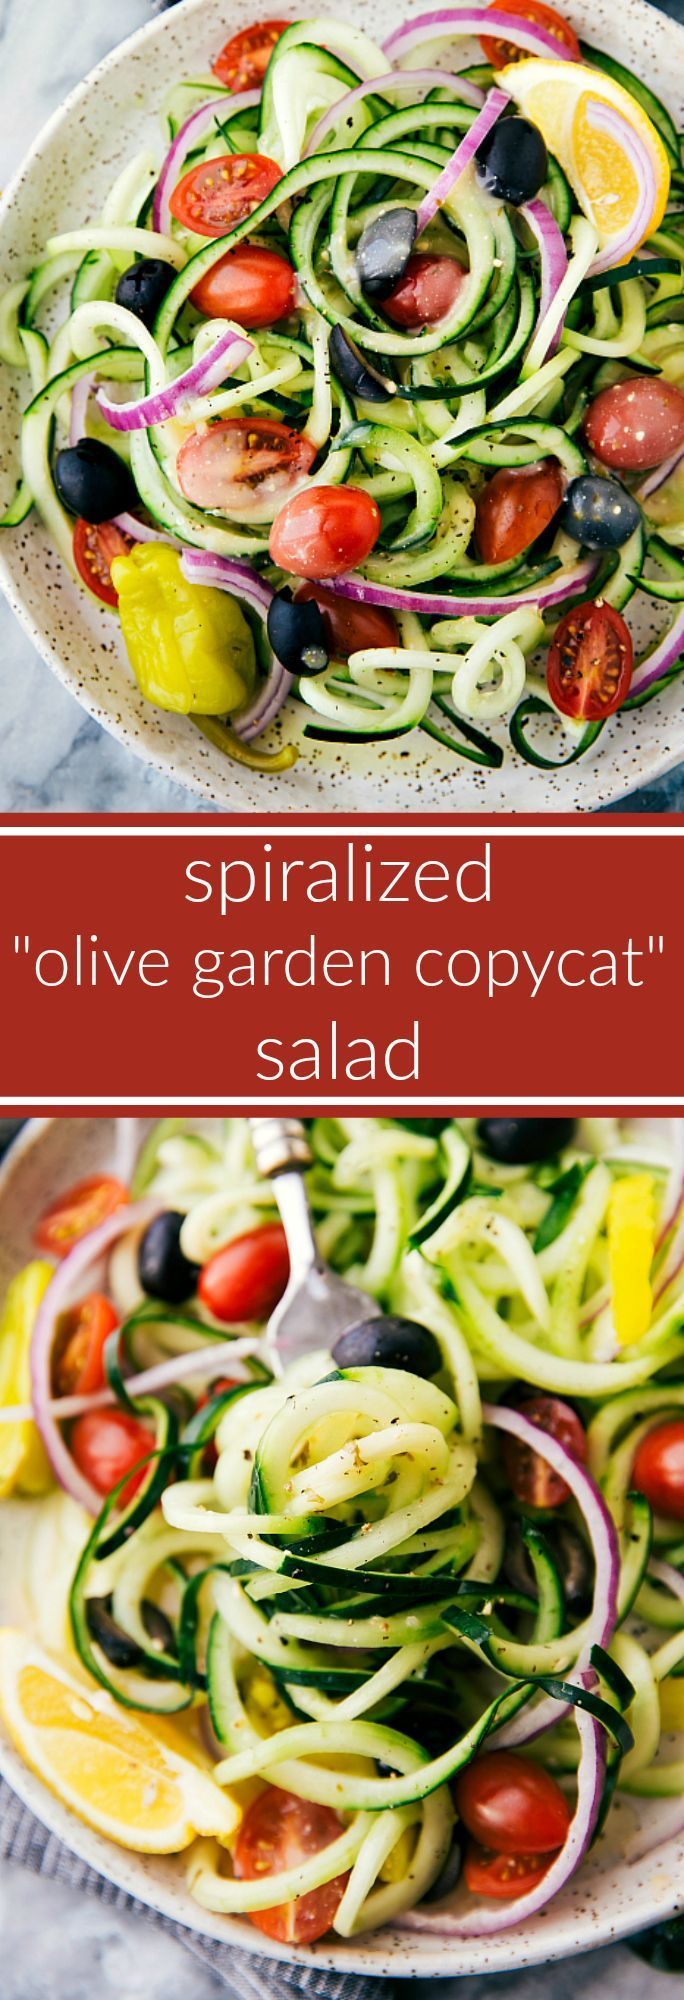 1000 images about spiralized recipes on pinterest - Olive garden salad dressing recipes ...